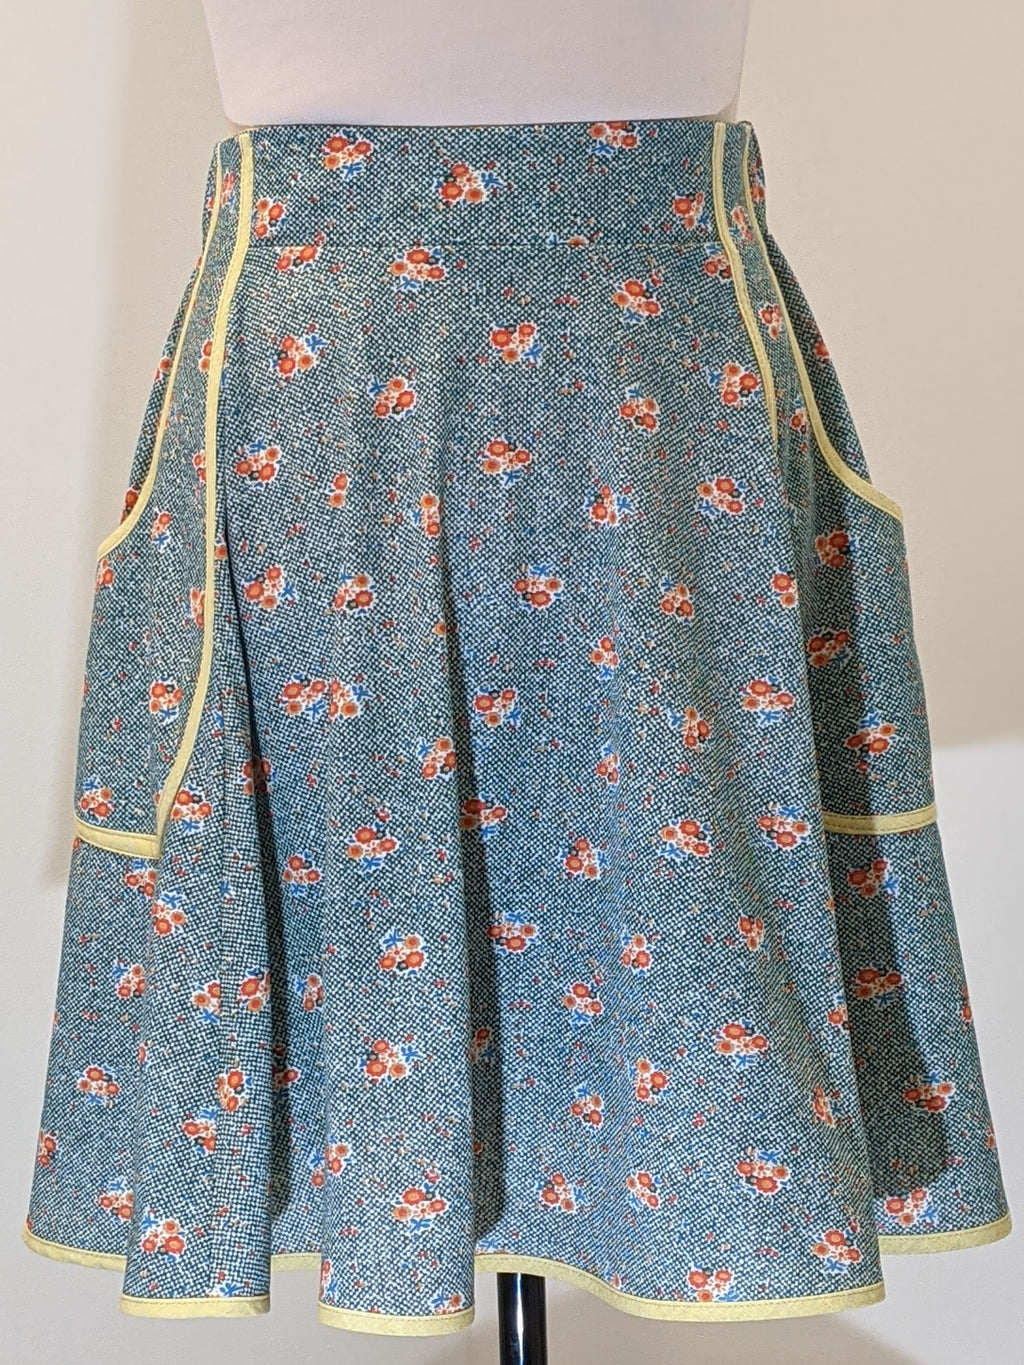 Green Dot Bouquets Vintage Fabric Skirt